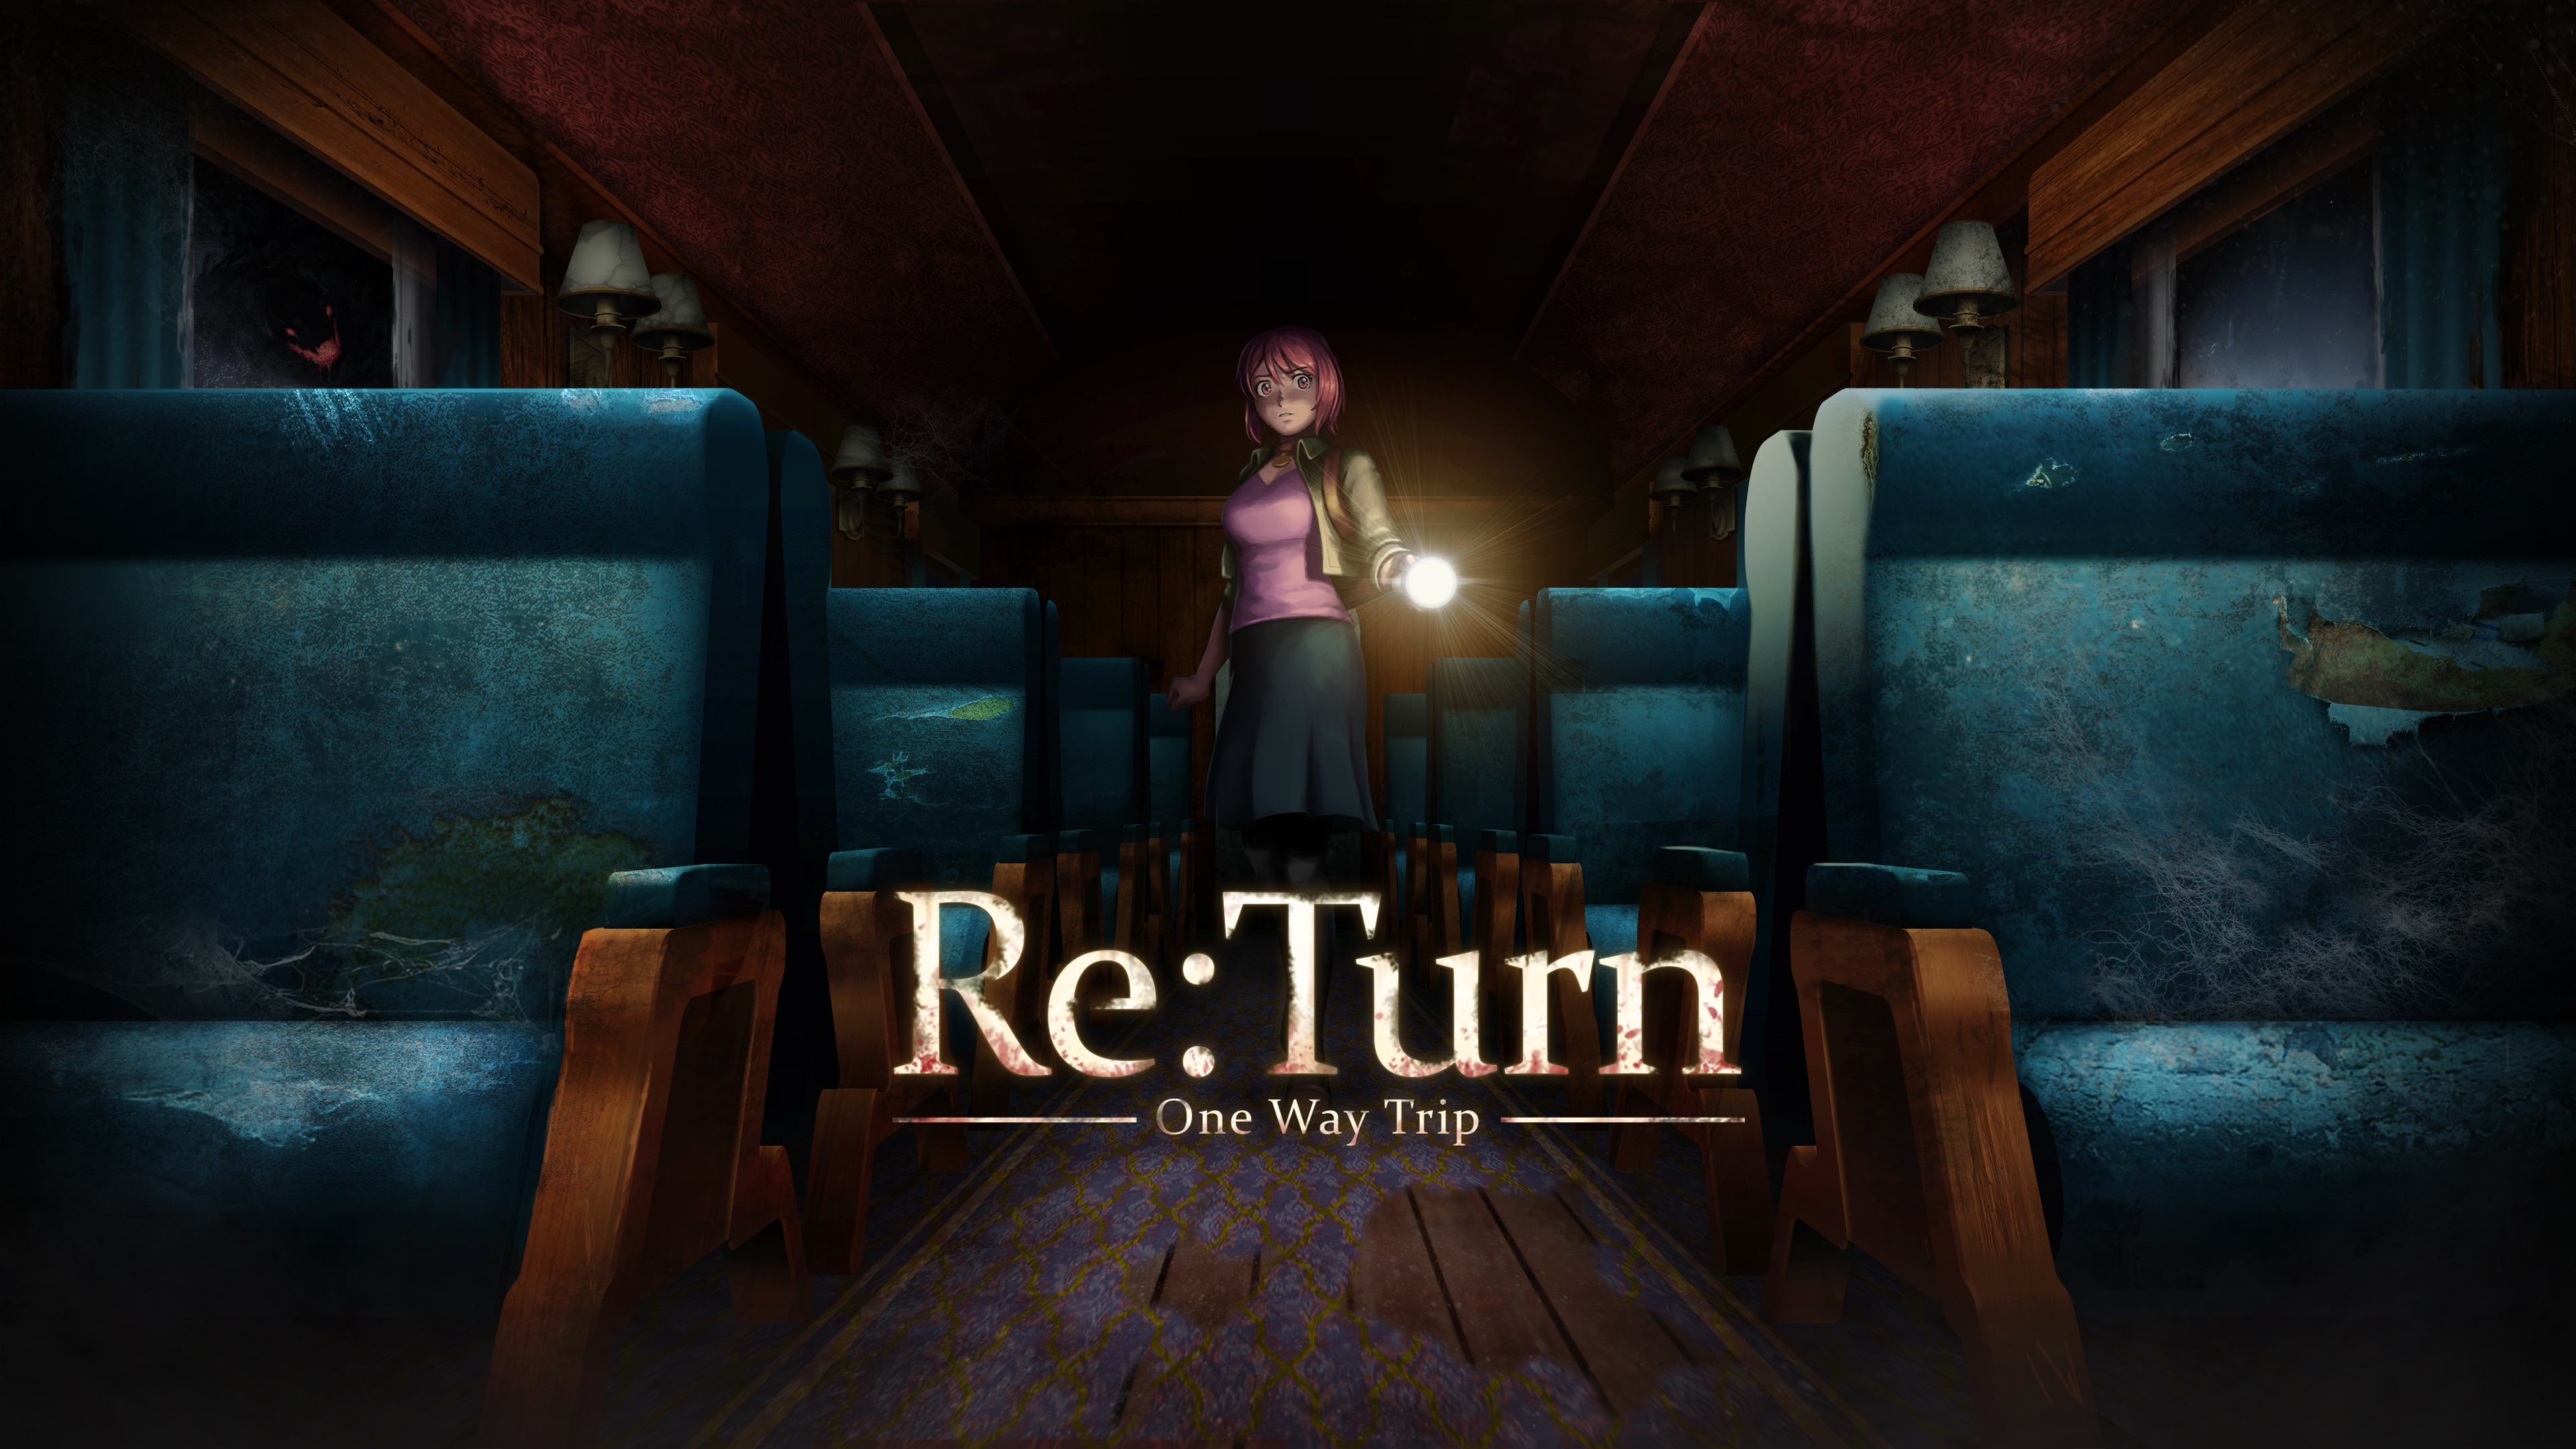 Re:Turn - One Way Trip